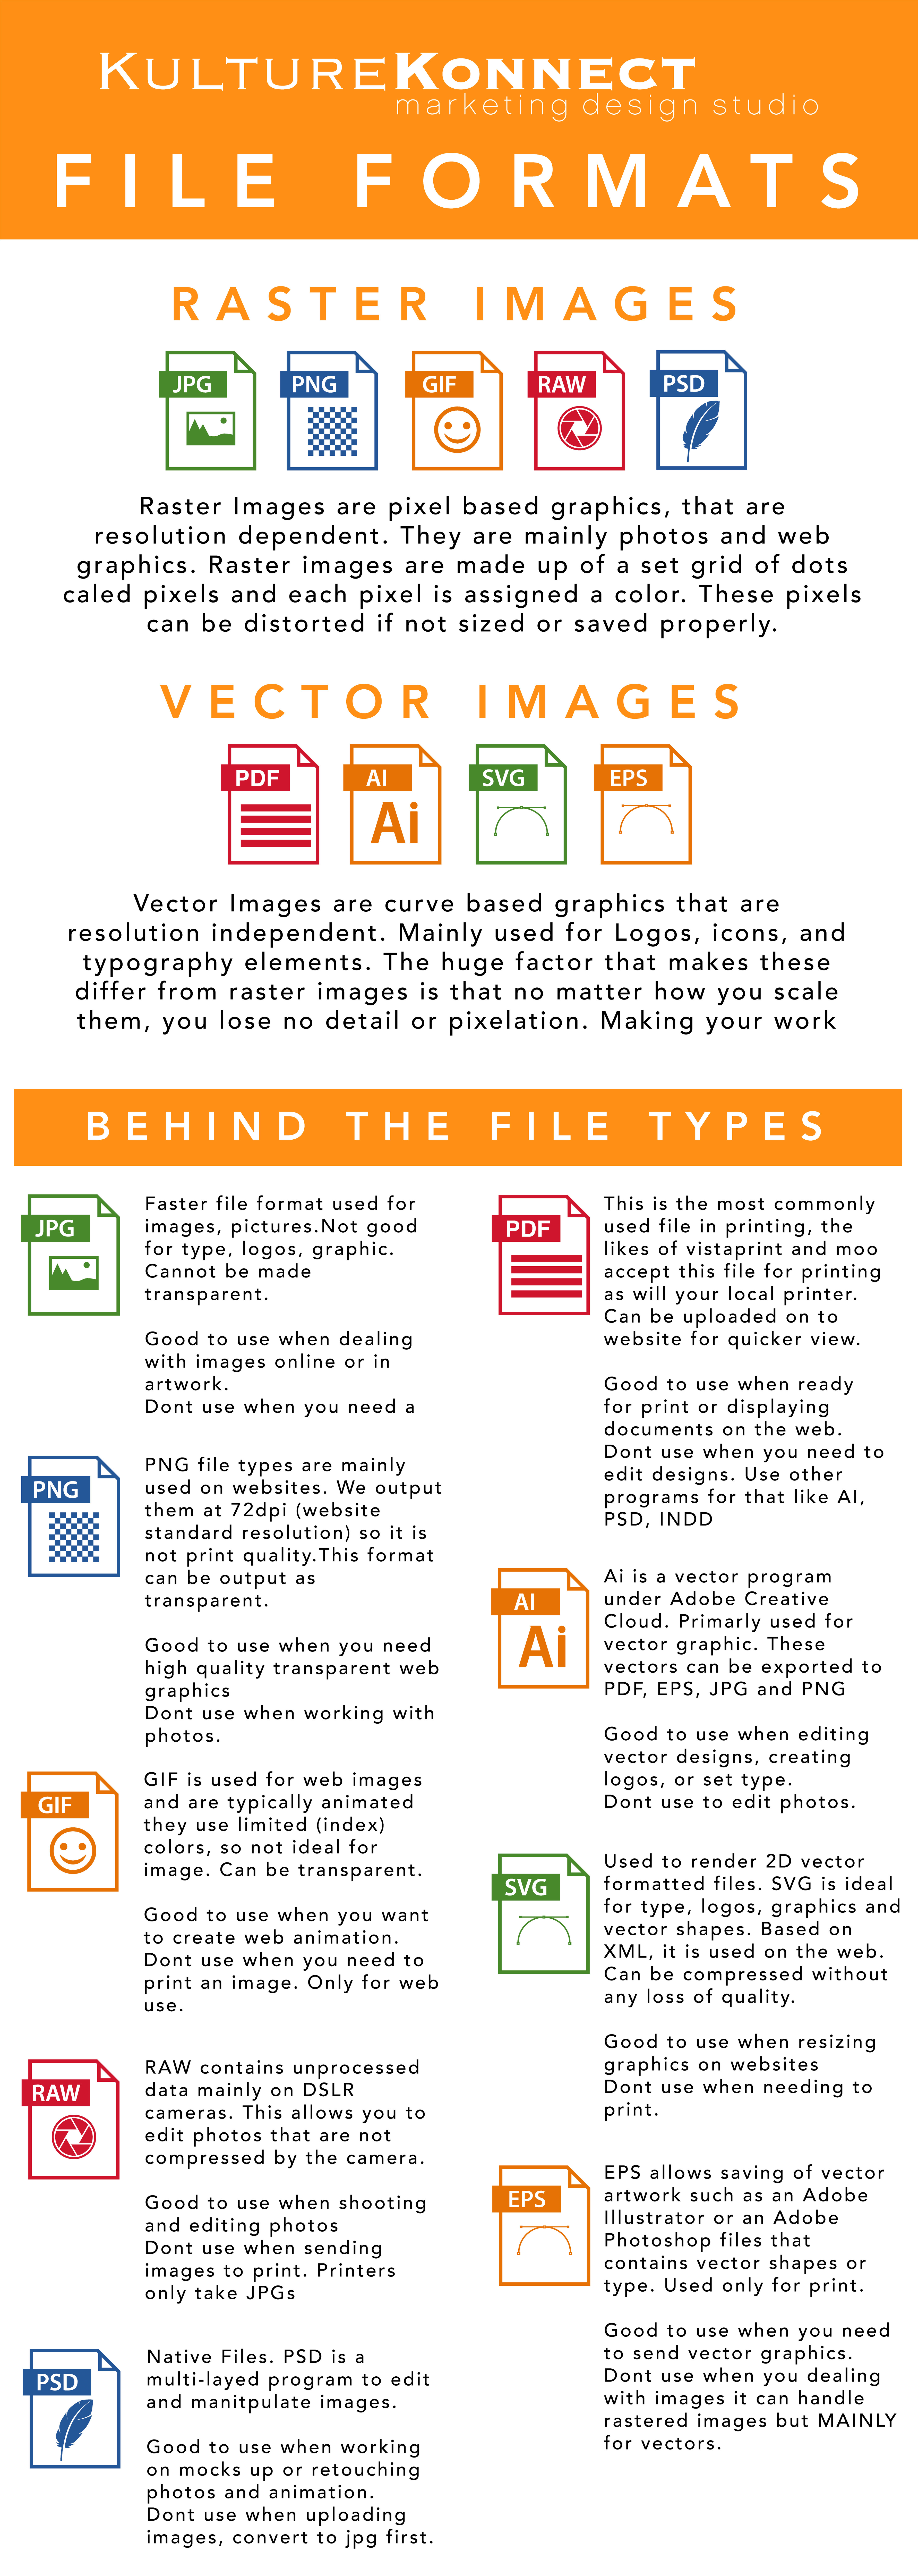 quick-and-easy-guide-to-understanding-file-formats